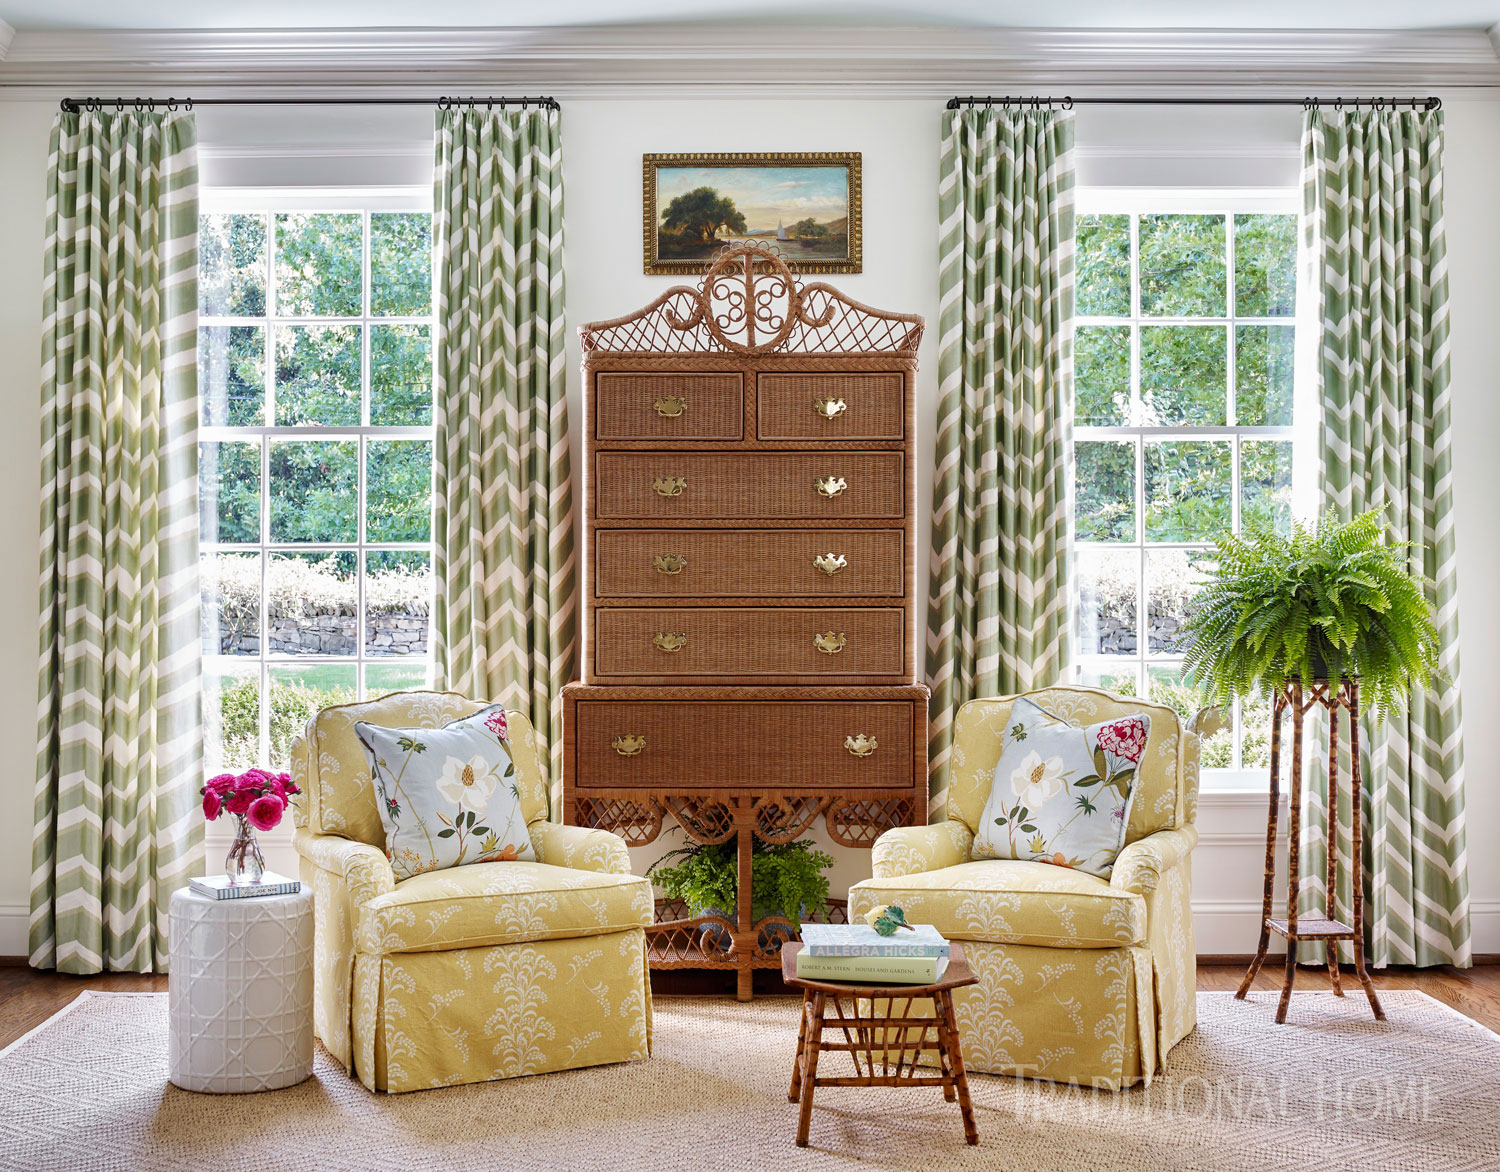 white sitting room with two yellow chairs and tall curtained windows